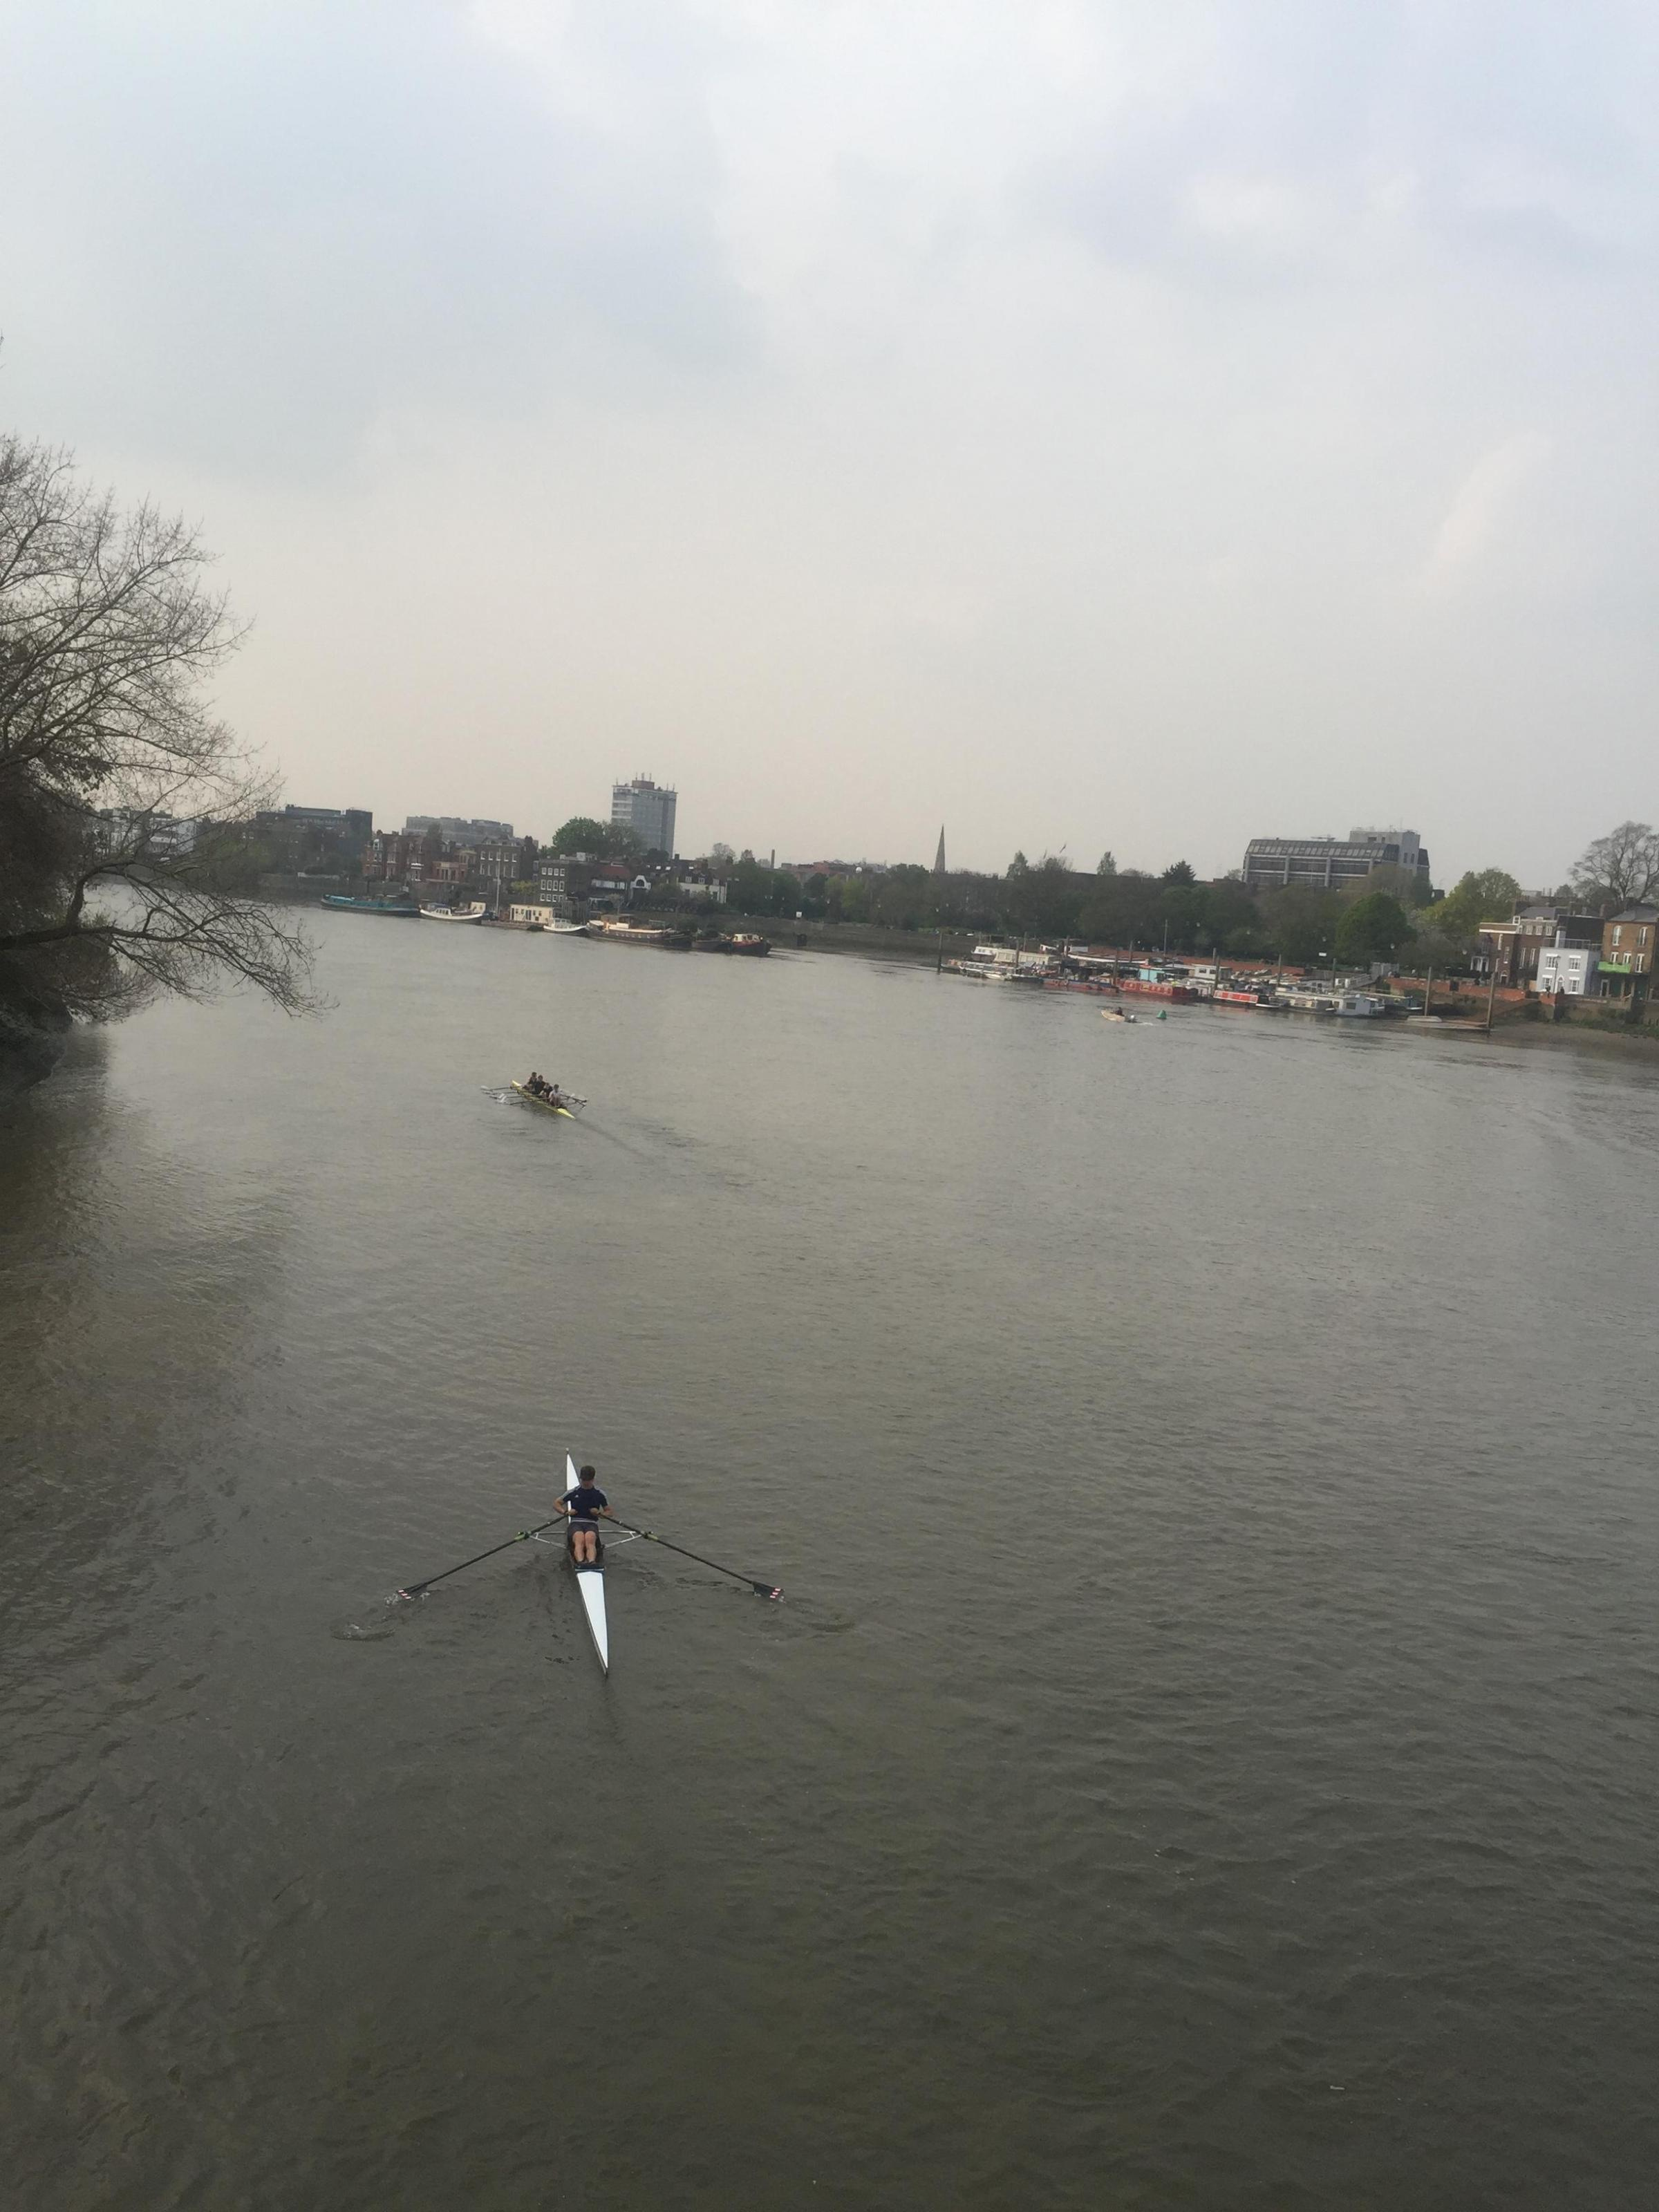 Location of the River Thames from Hammersmith Bridge where the Boat Race took place